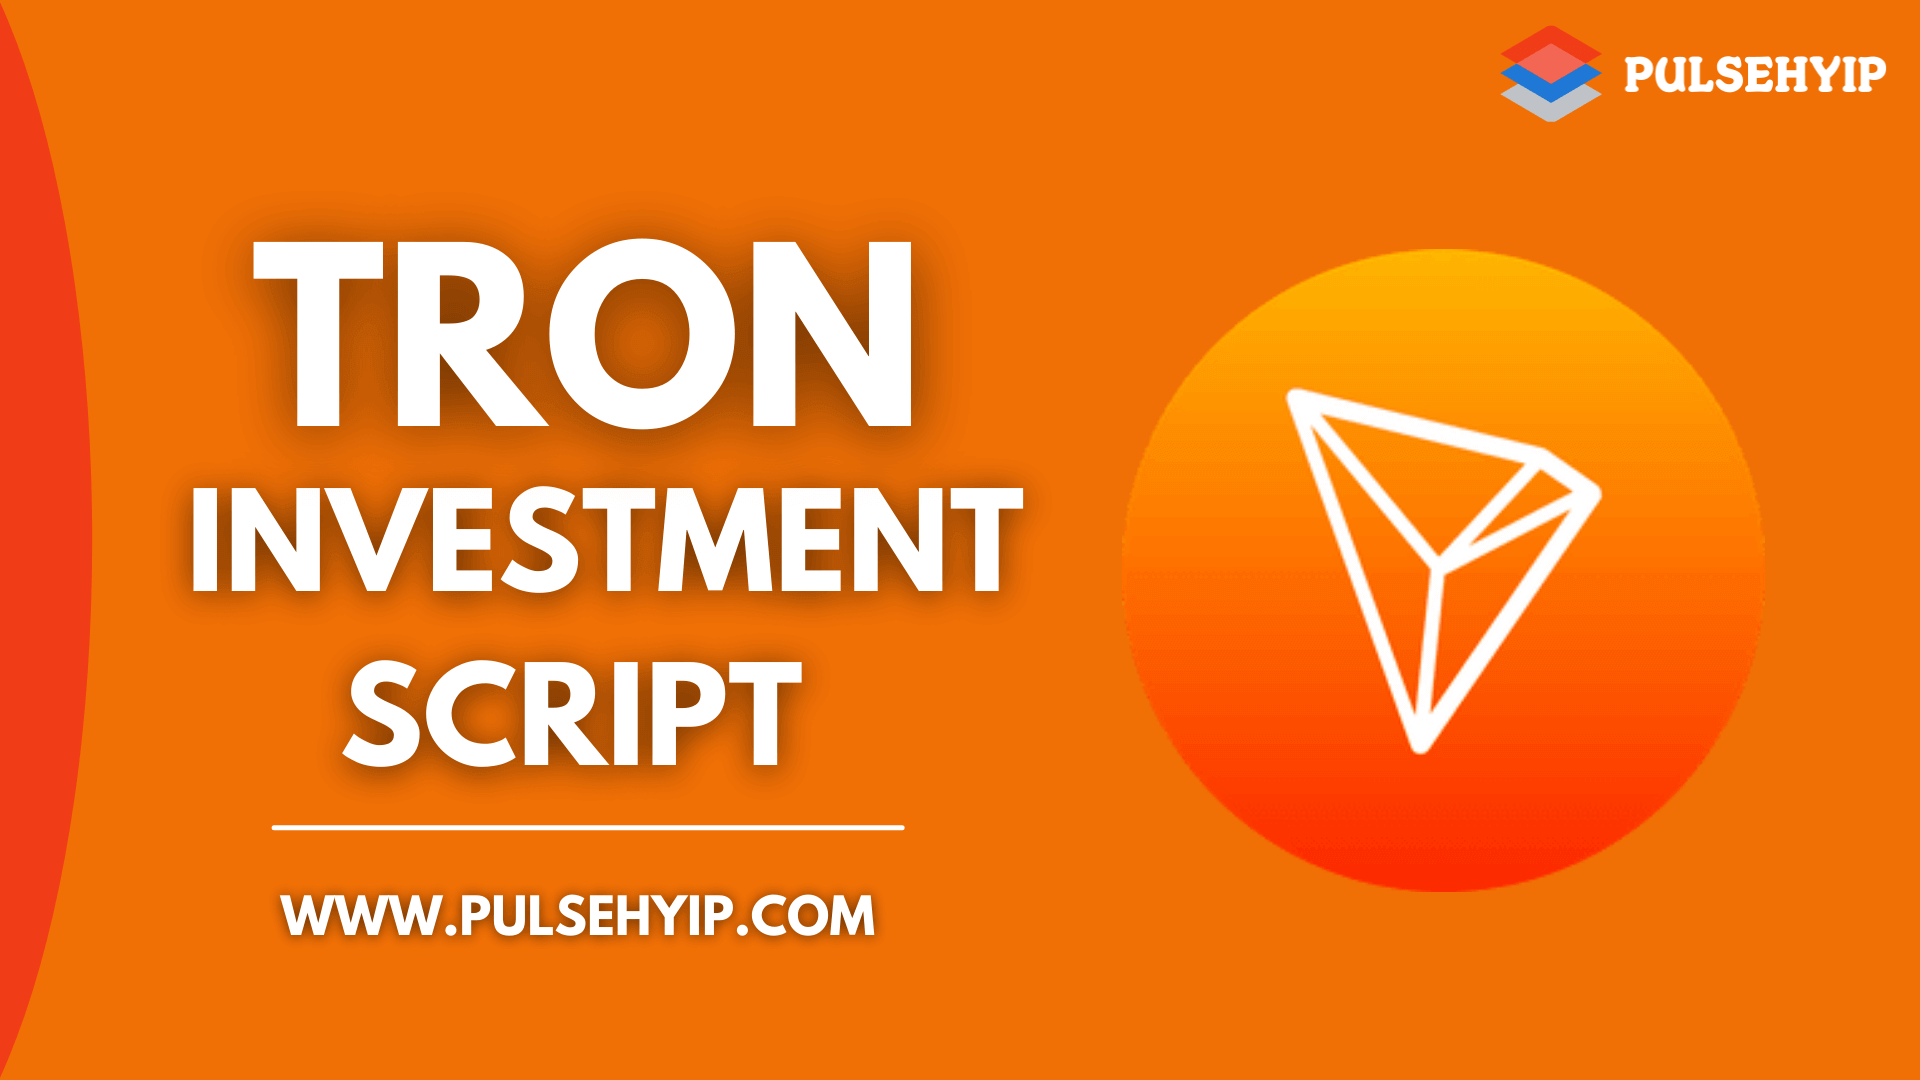 Build TRON Investment Platform with Our White Label TRON Investment Script Software